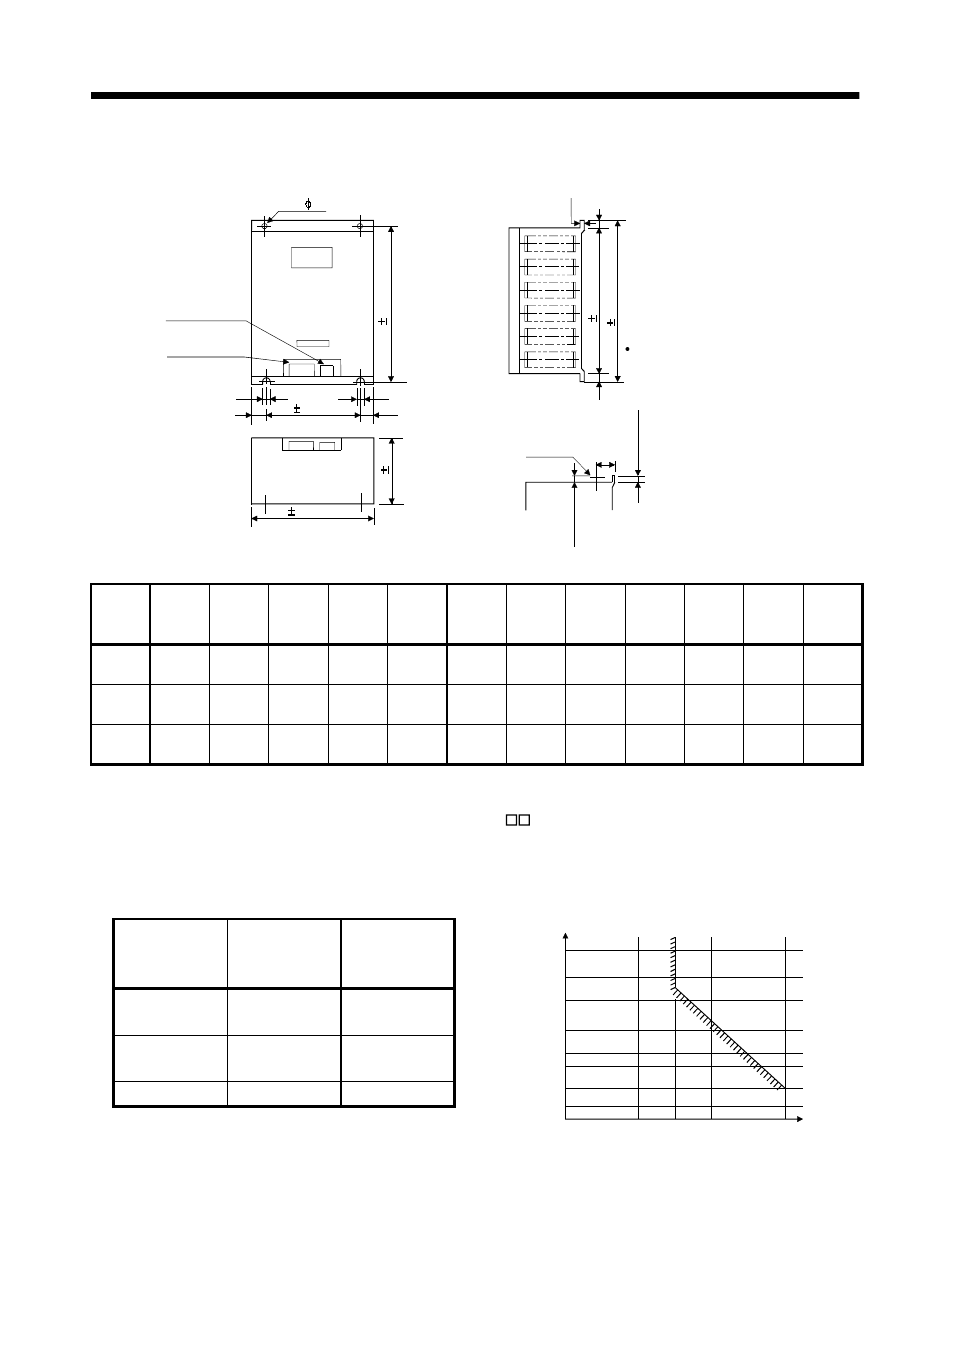 Mitsubishi Electric Converter Diagram Electrical Wiring Diagrams Conversion Adconverter Addaconvertercircuit Circuit 3 Power Regeneration Options And Auxiliary Equipment Phase